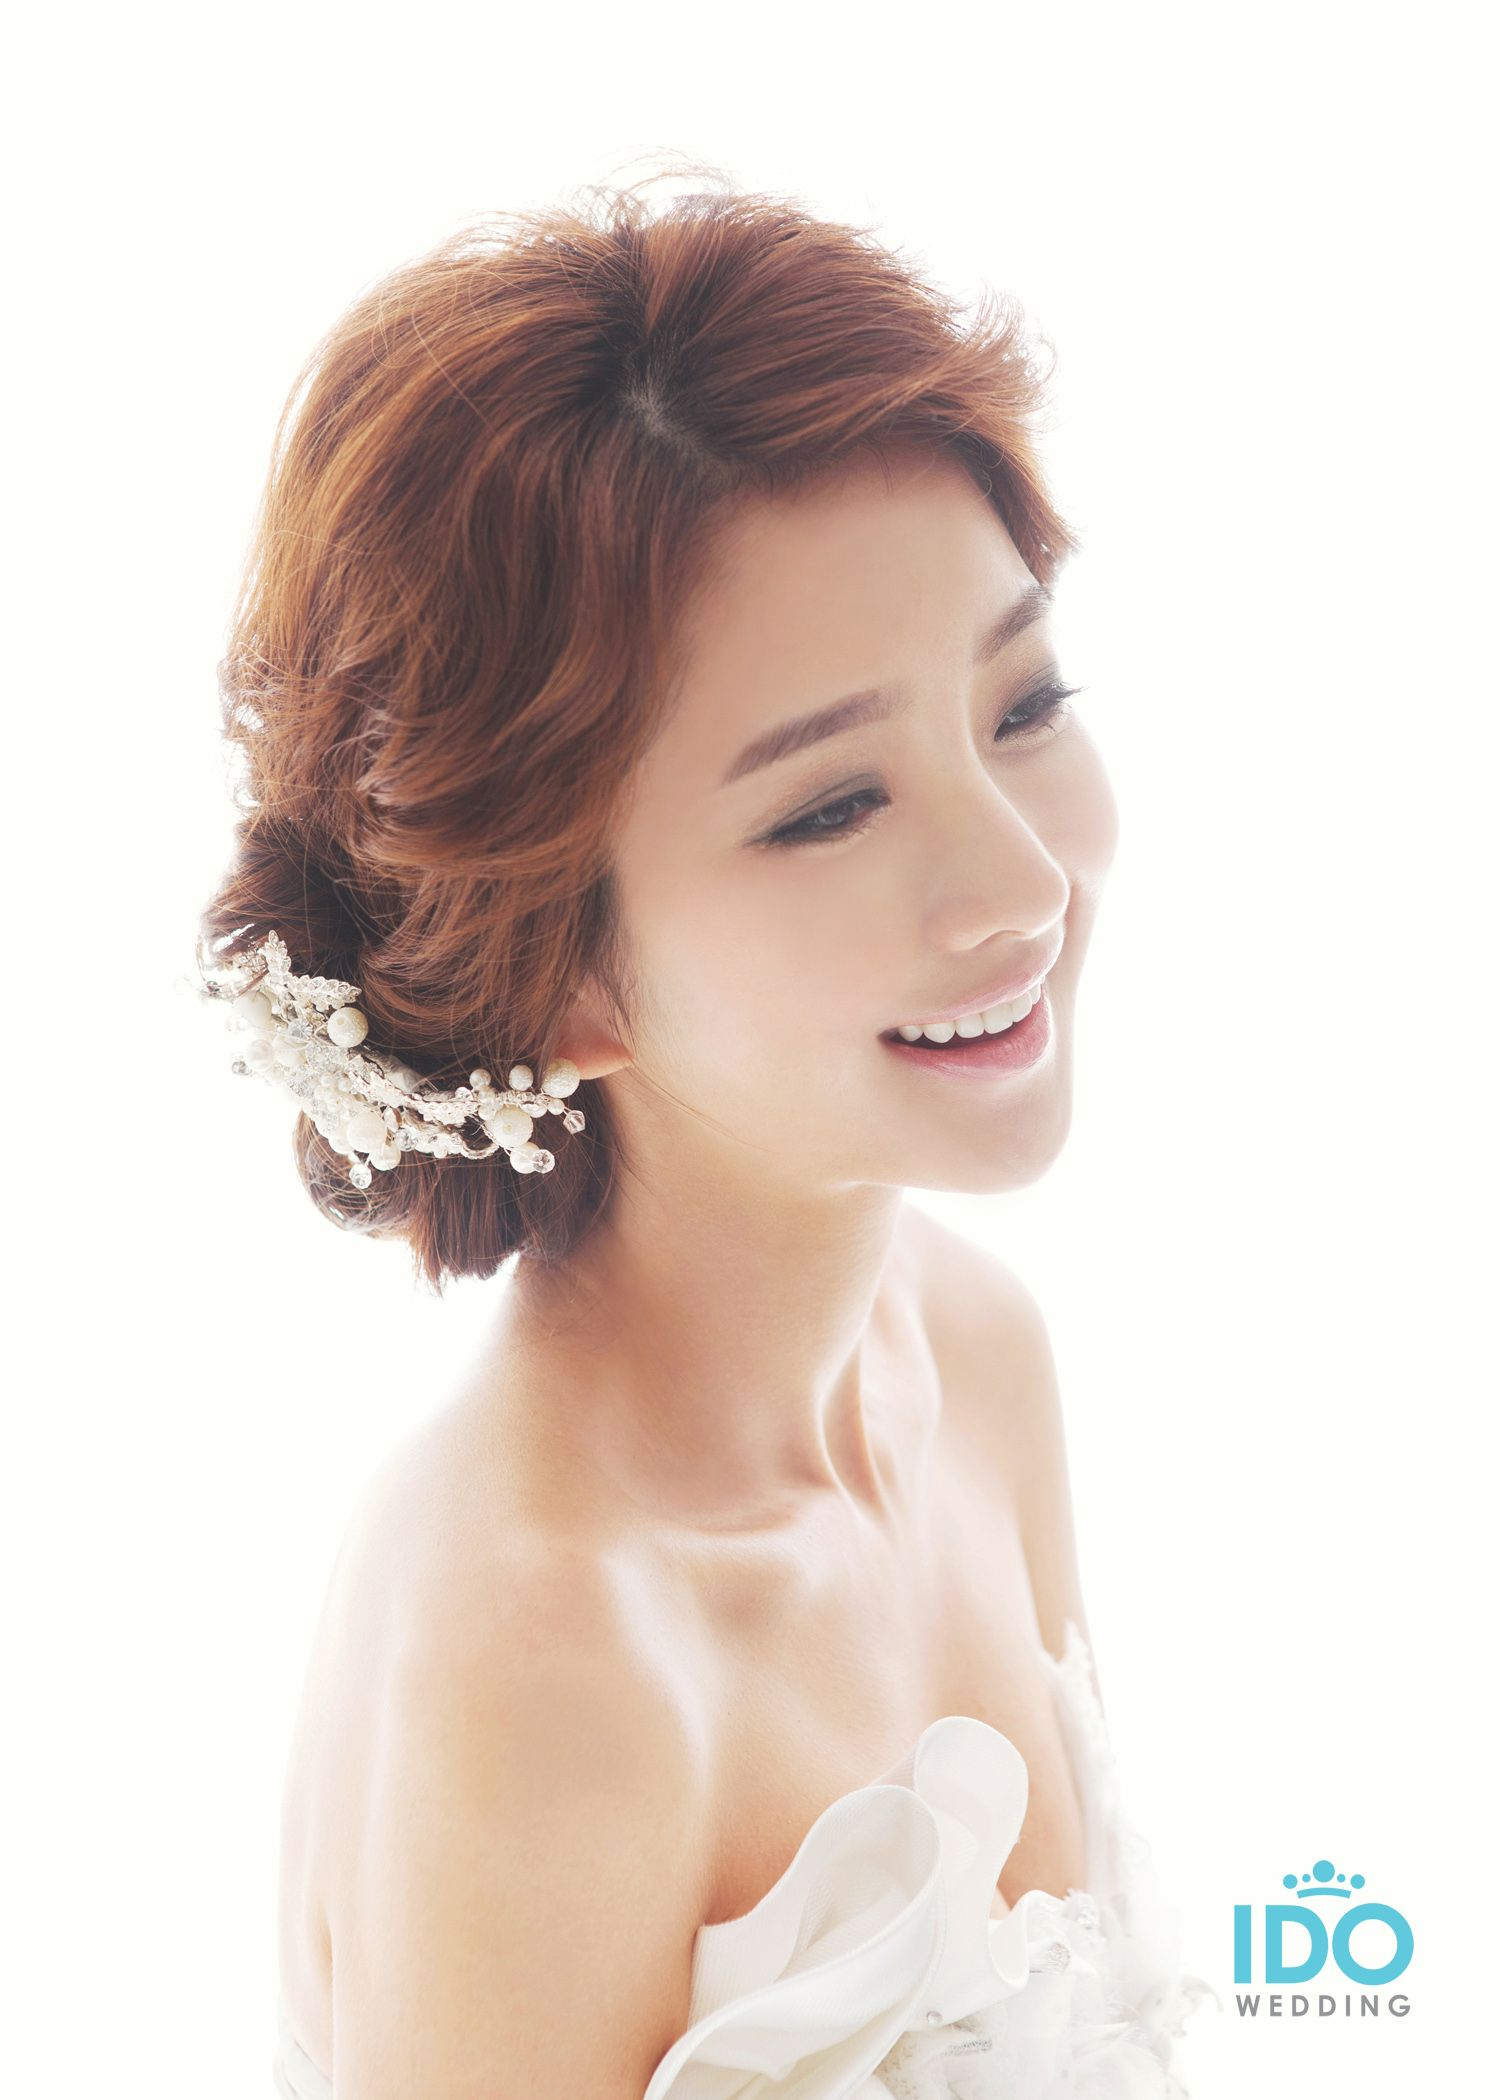 photos hair style korean wedding photo hair amp makeup style hair 신부 6123 | 8e61a001a6b6123dfdc3c706f3d61302